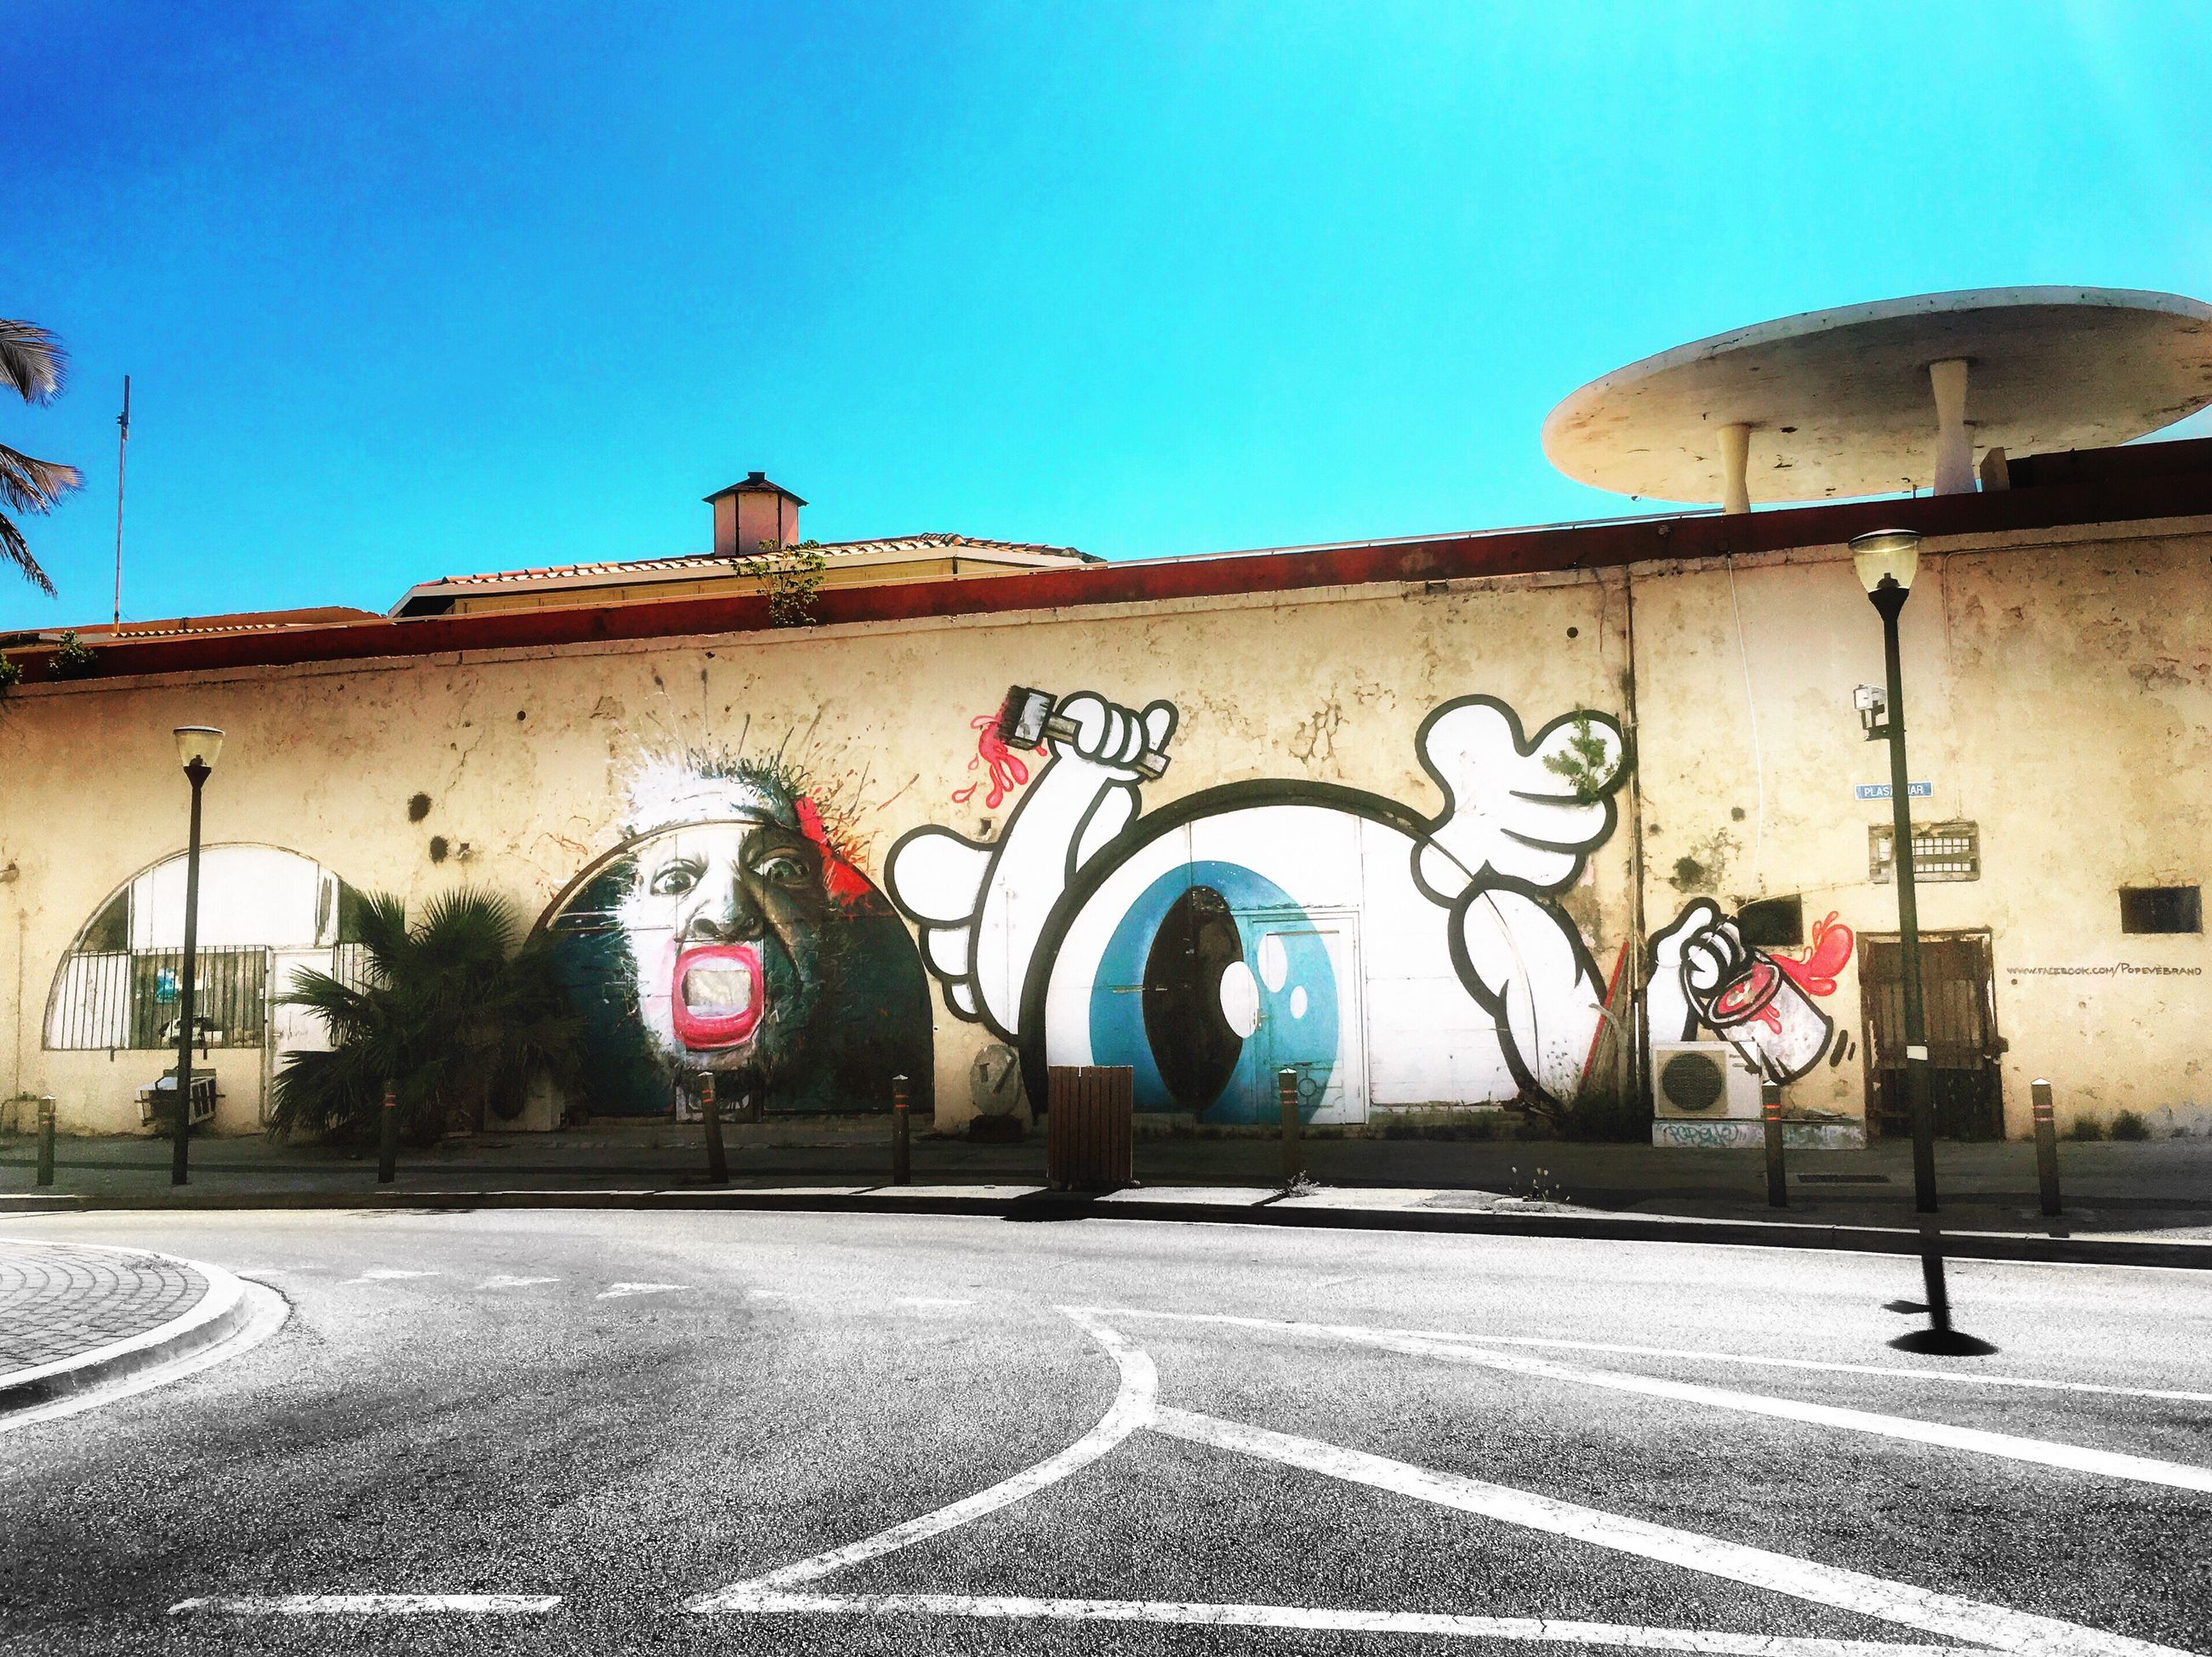 architecture, built structure, building exterior, clear sky, graffiti, multi colored, wall - building feature, art, transportation, road, creativity, blue, outdoors, day, mural, no people, arched, colorful